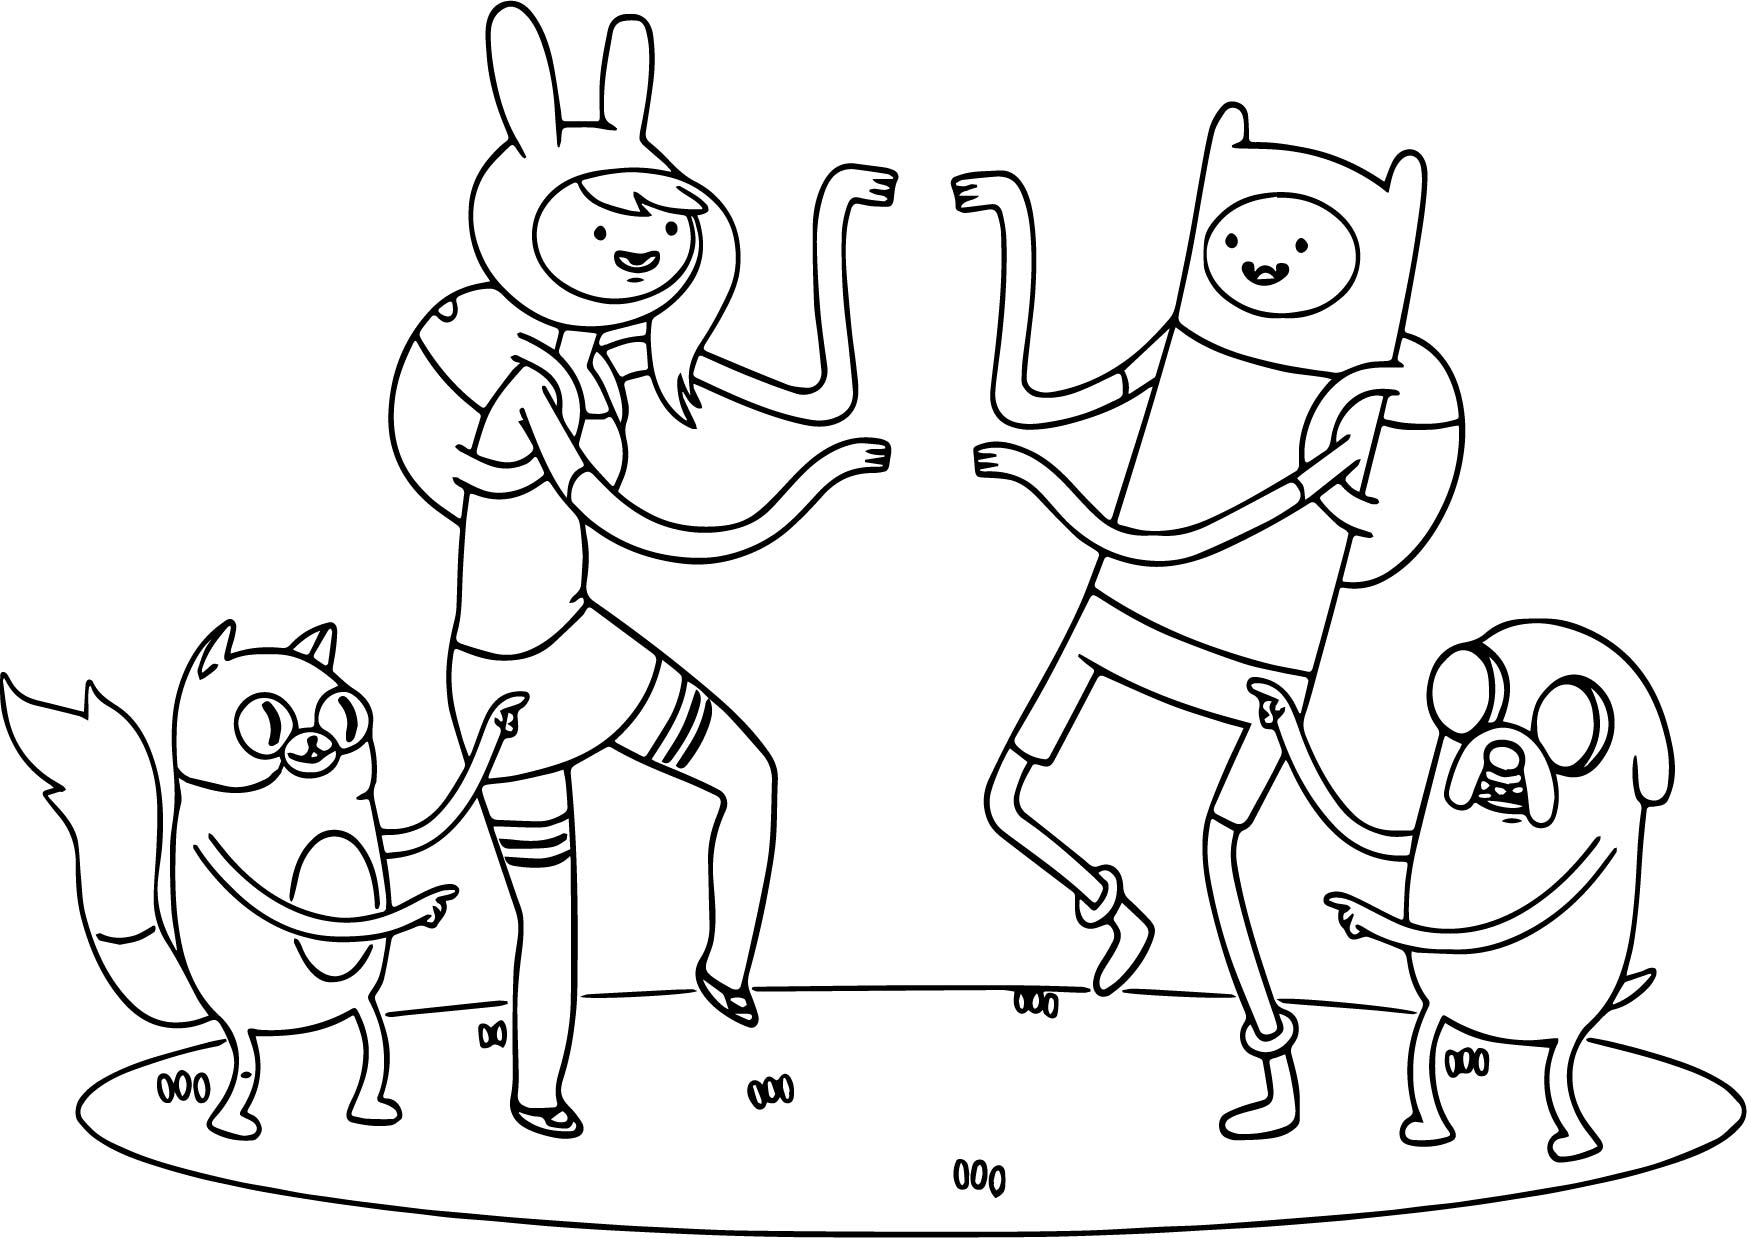 threadless adventure time team dance coloring page wecoloringpage